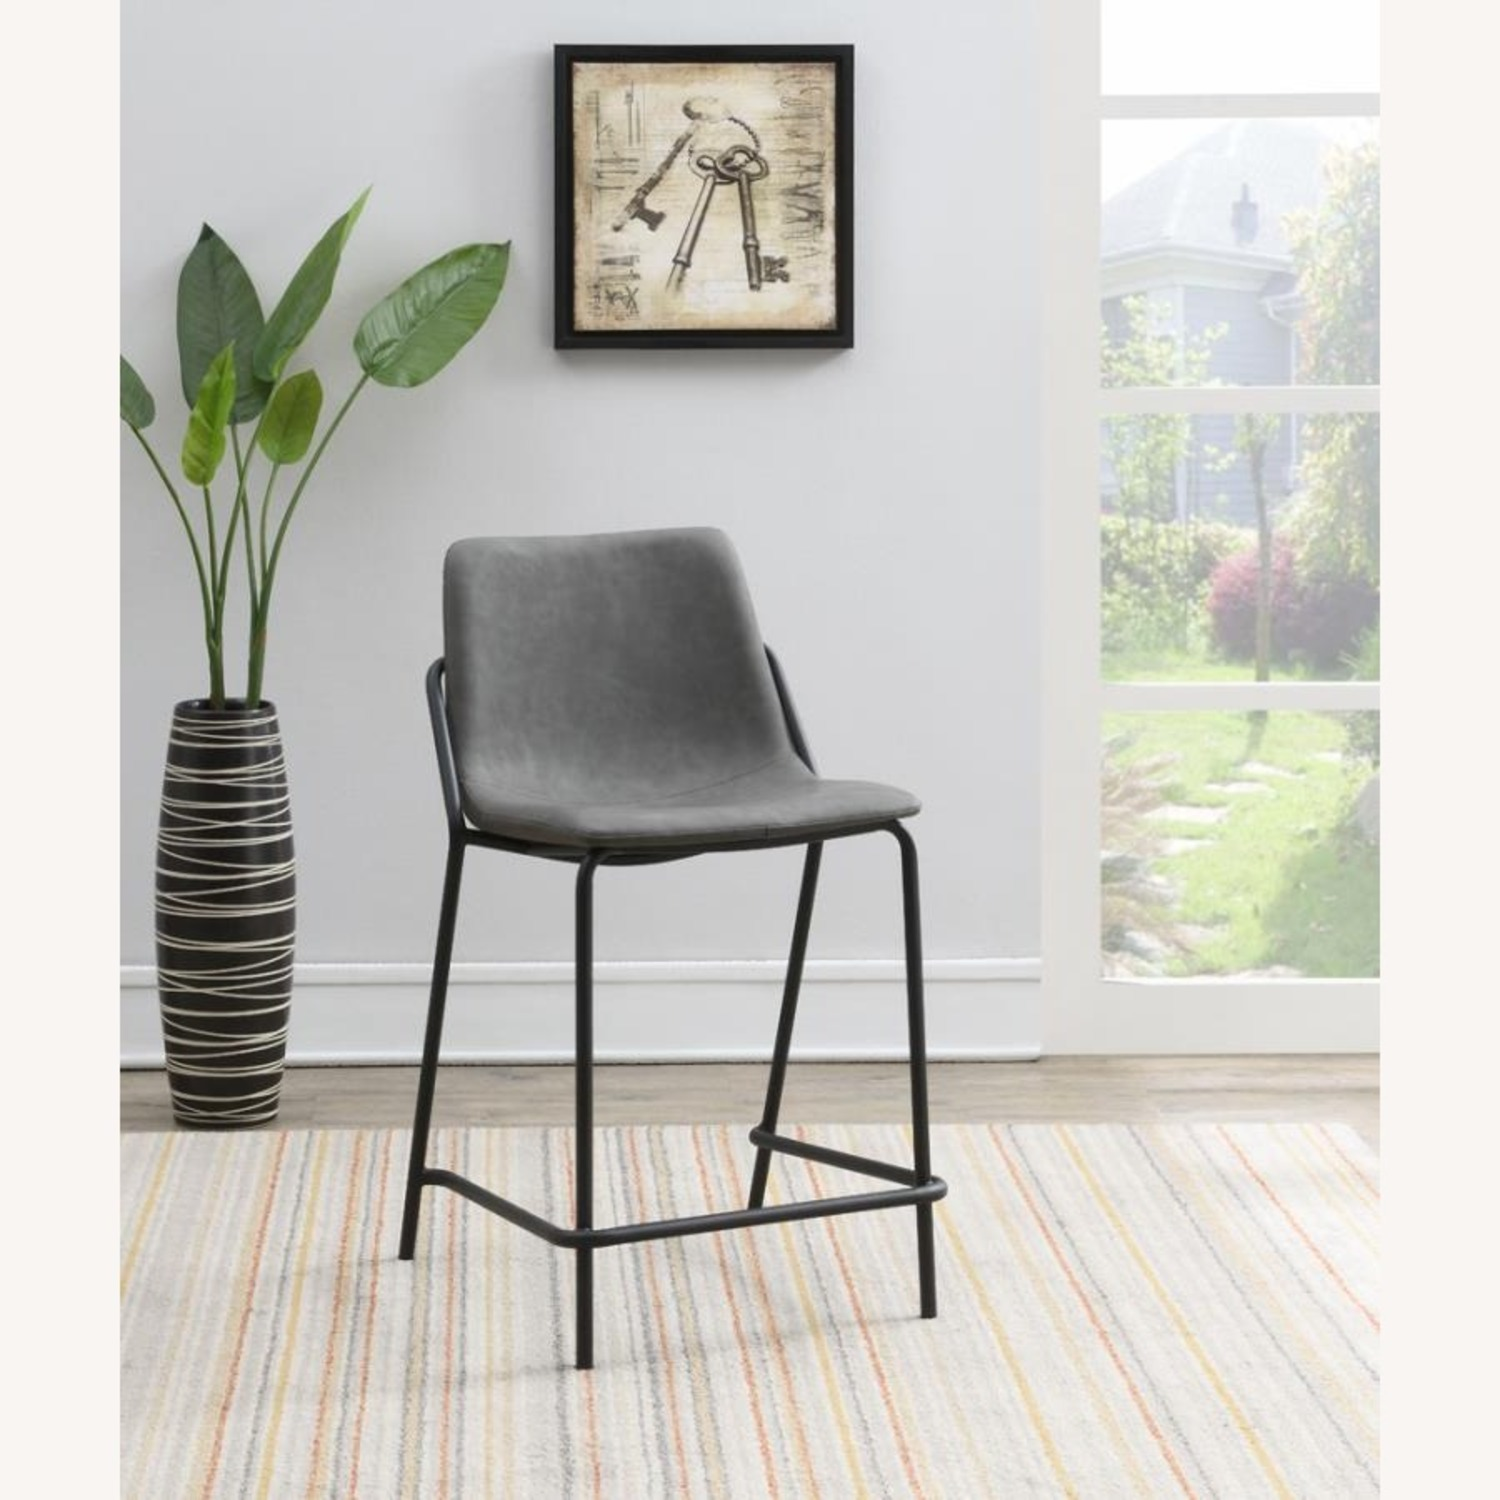 Counter Stool In Grey Leather & Black Metal Finish - image-4